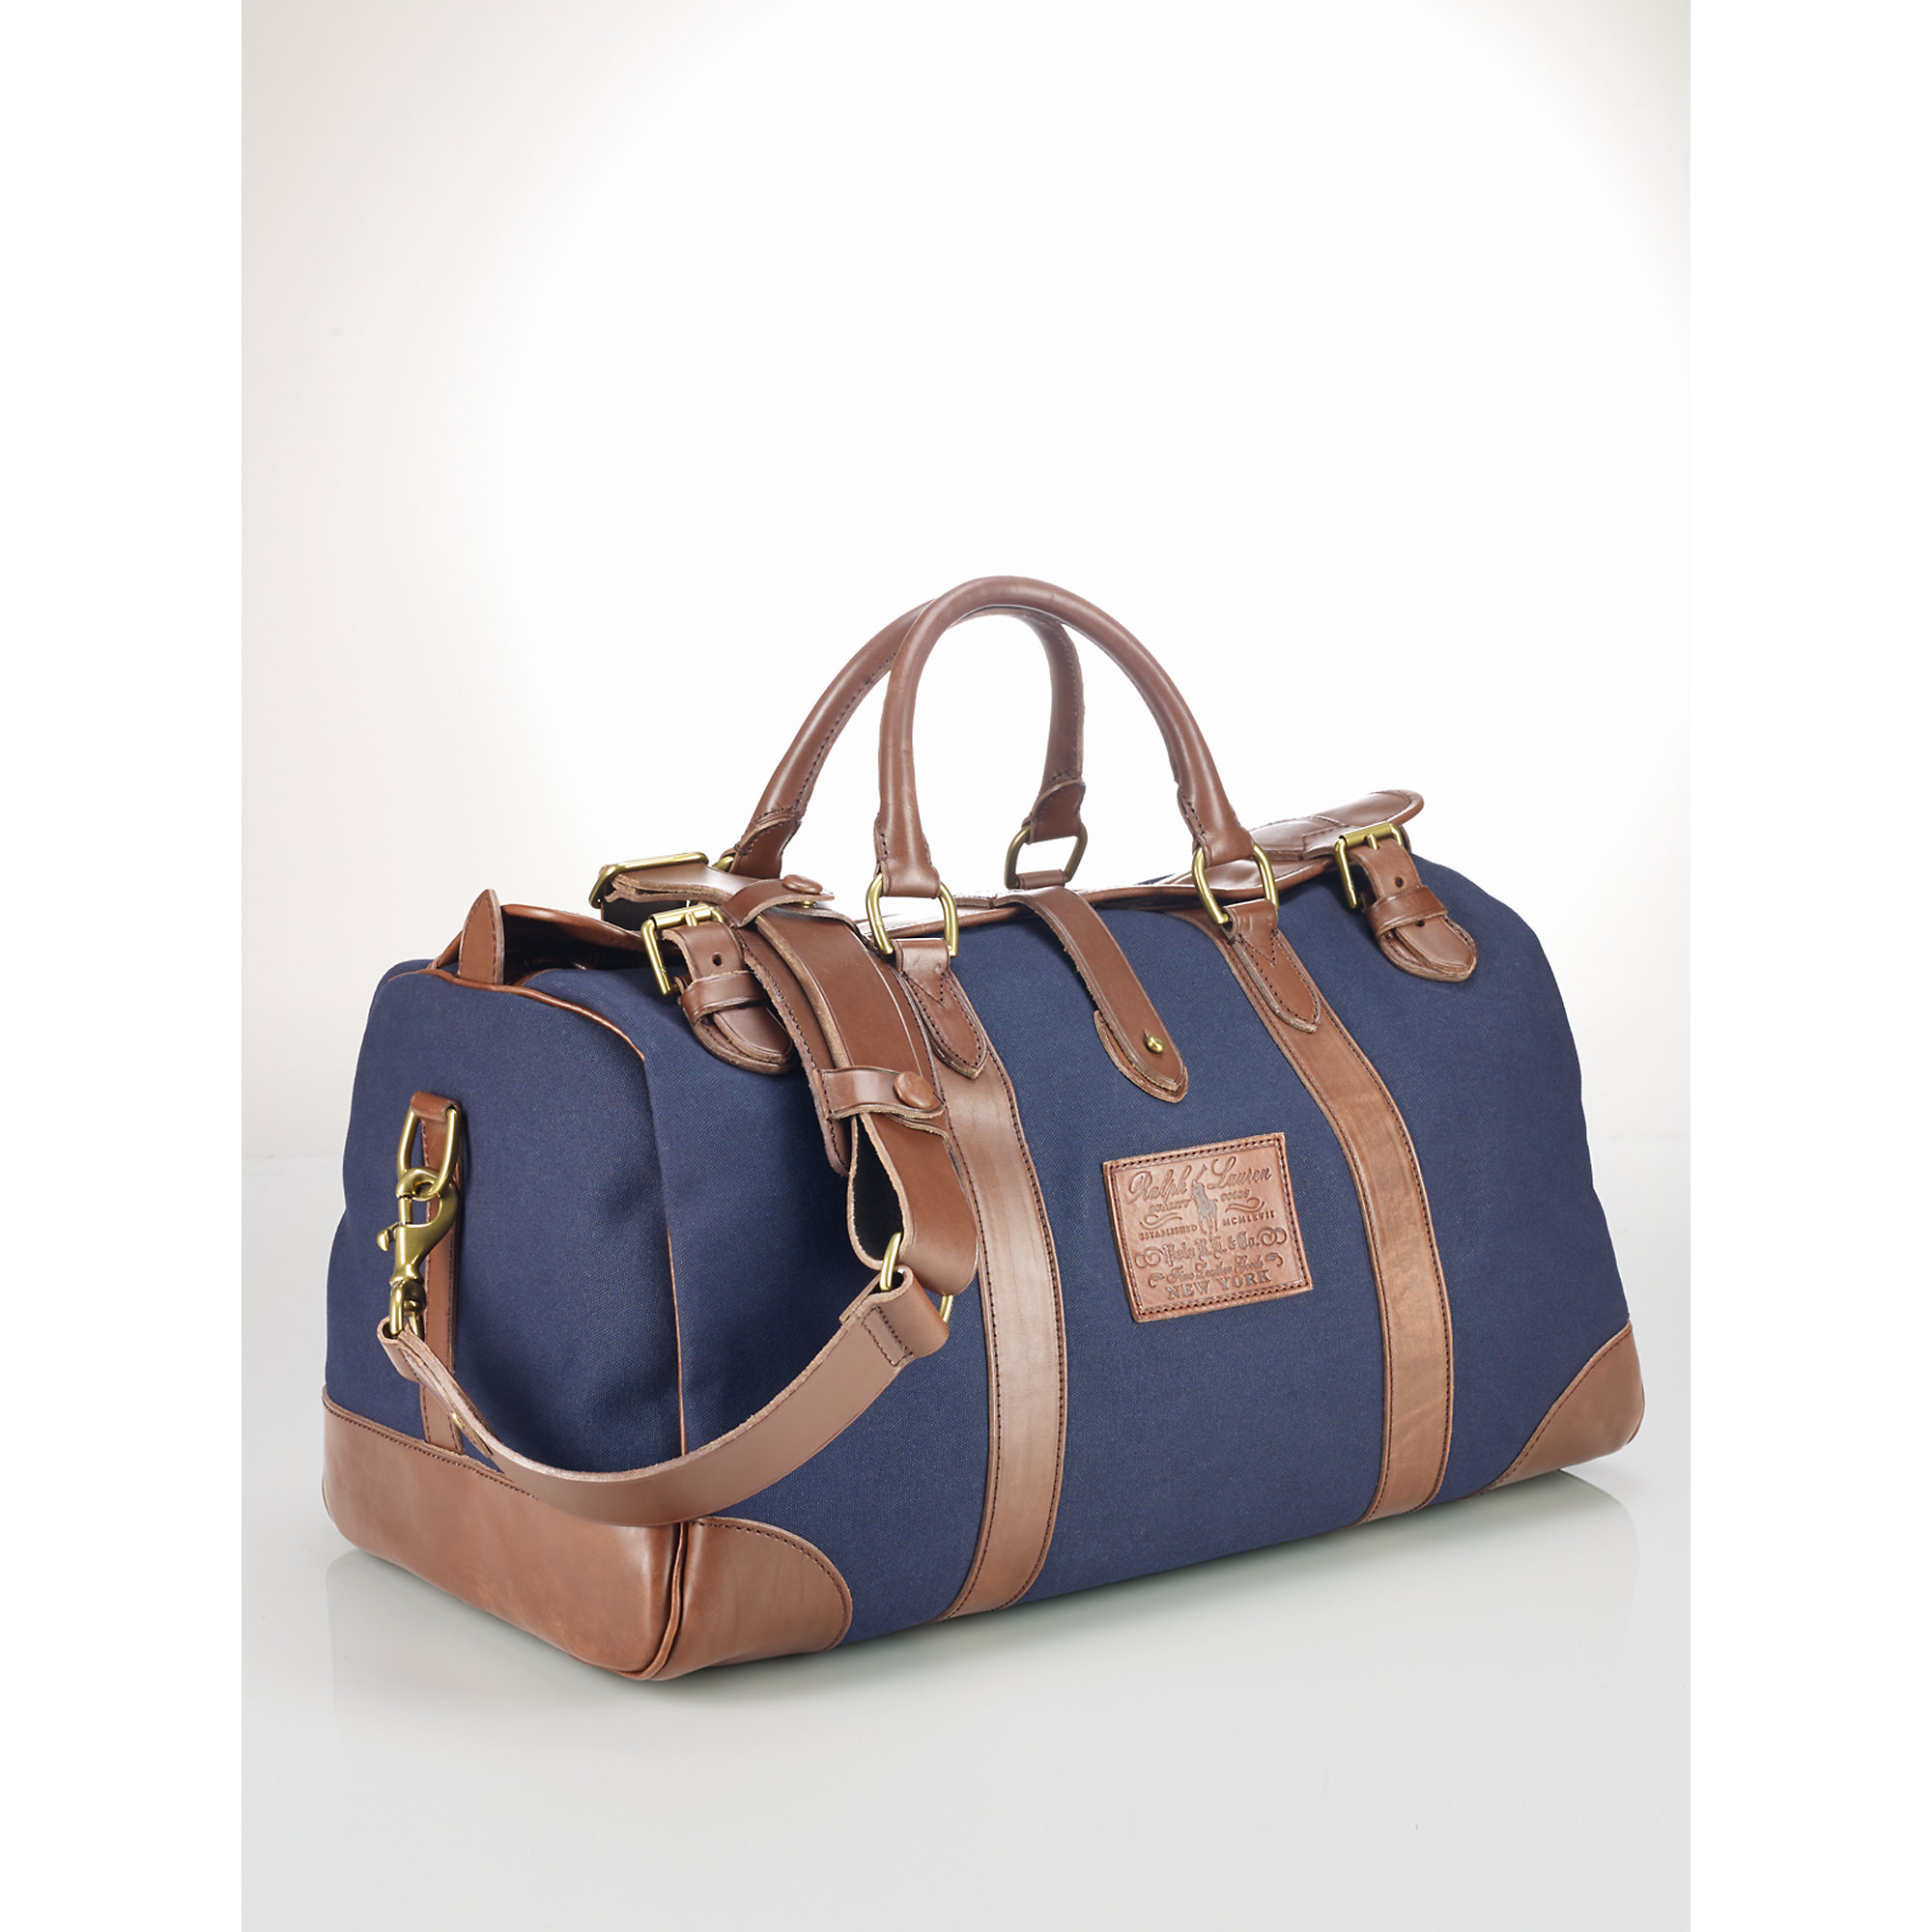 384fd014c73e Lyst - Polo Ralph Lauren Leather-trim Canvas Gym Bag in Blue for Men